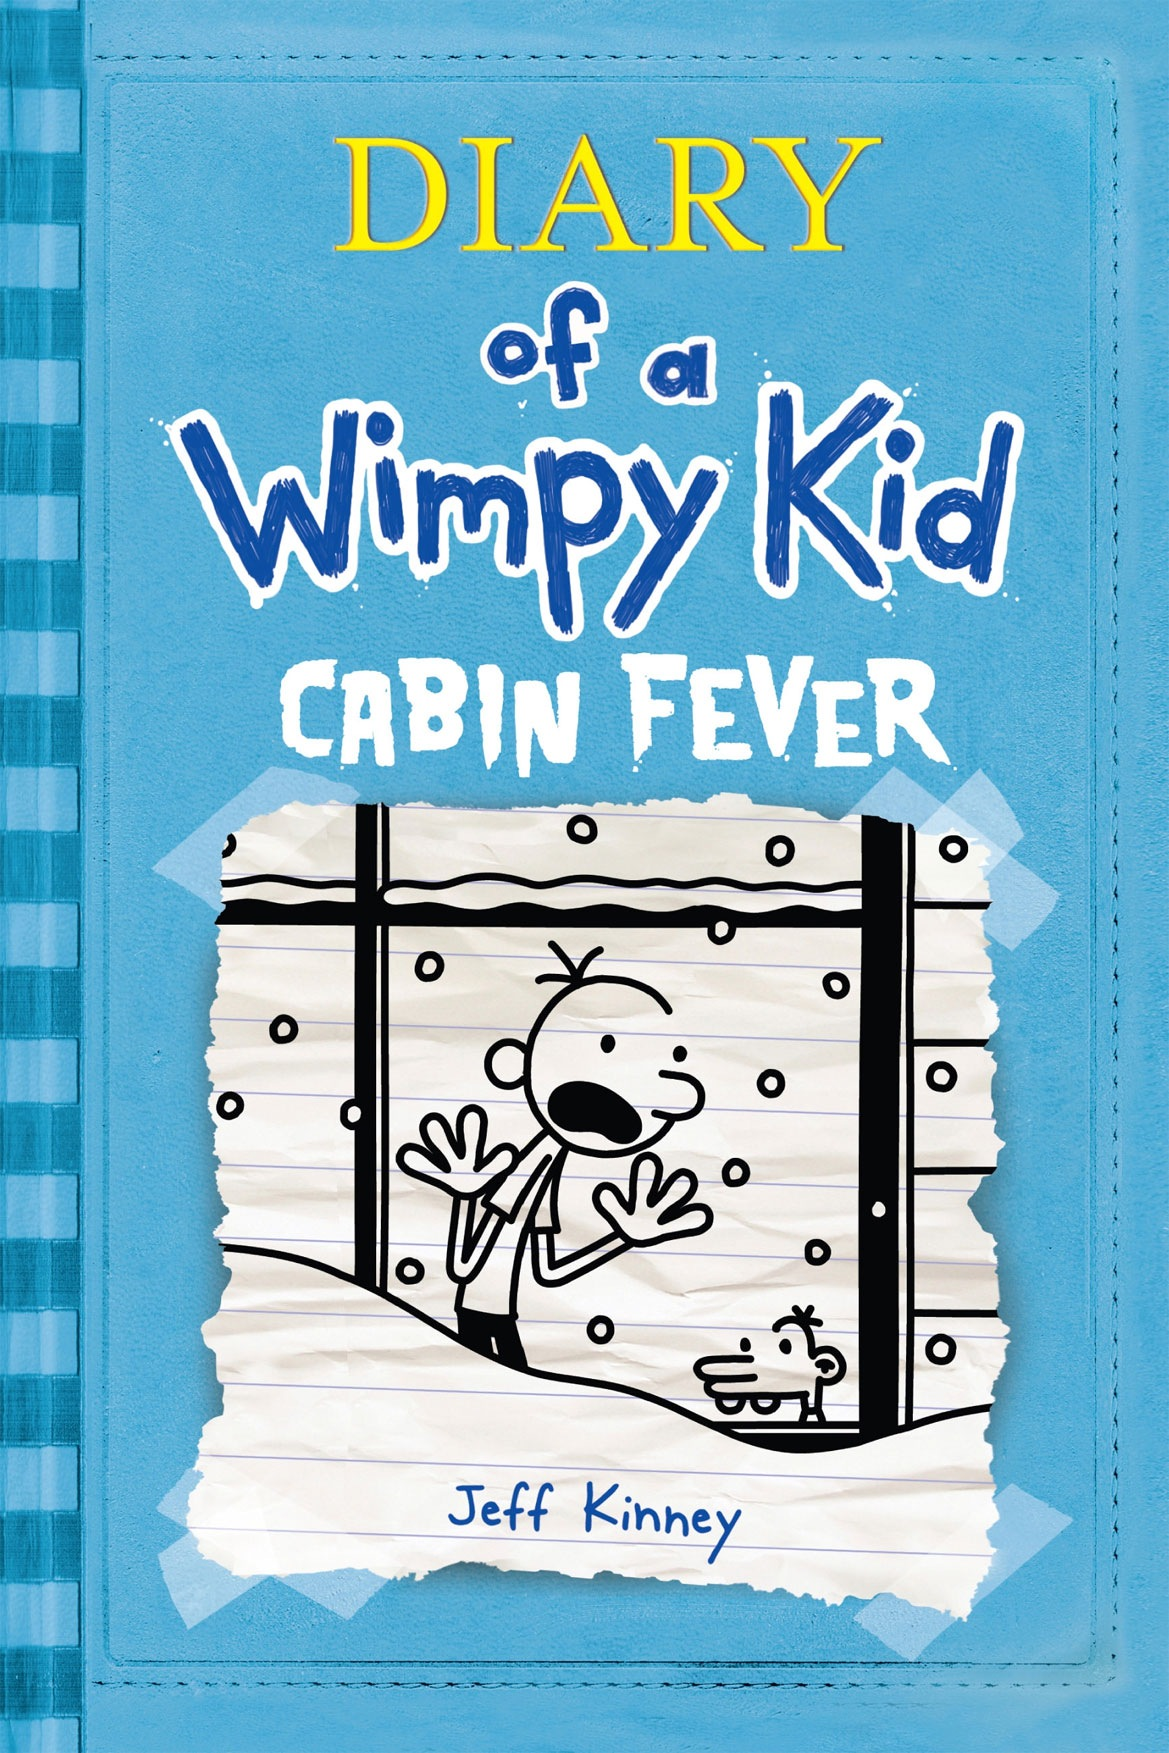 Cabin fever diary of a wimpy kid book 6 by jeff kinney paperback cabin fever diary of a wimpy kid book 6 by jeff kinney paperback myer online solutioingenieria Gallery